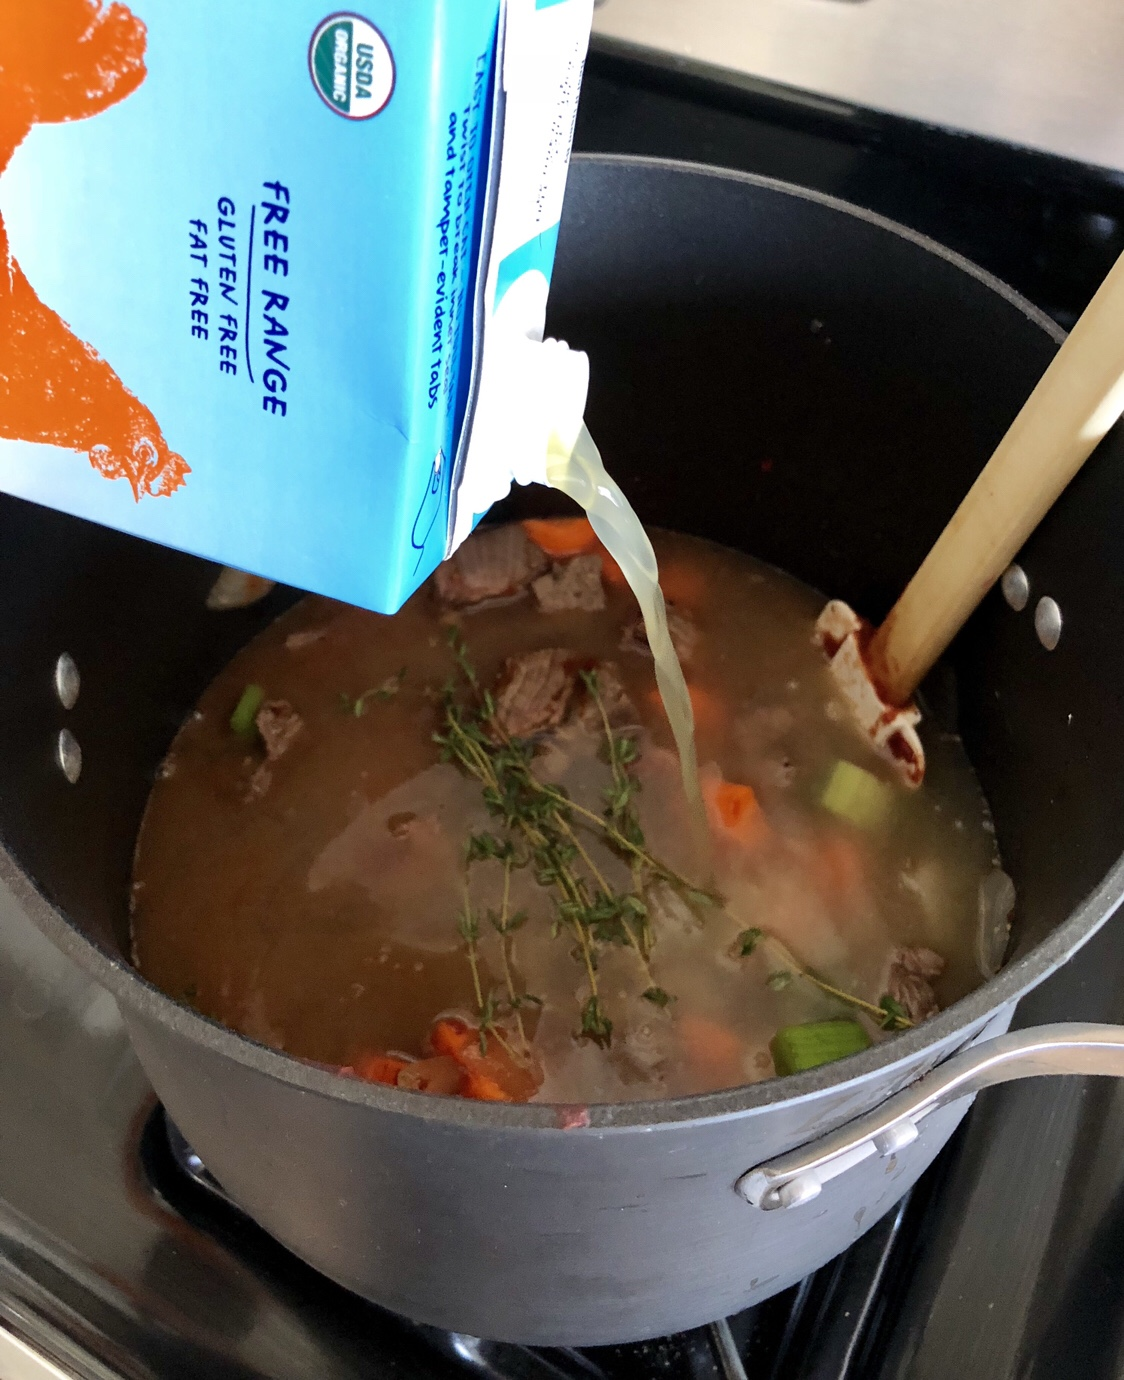 Add in 2 and a half cups of chicken broth or enough to cover. Cover and simmer for 2 hours. Uncover and boil for 15-20 minutes or until thickened.